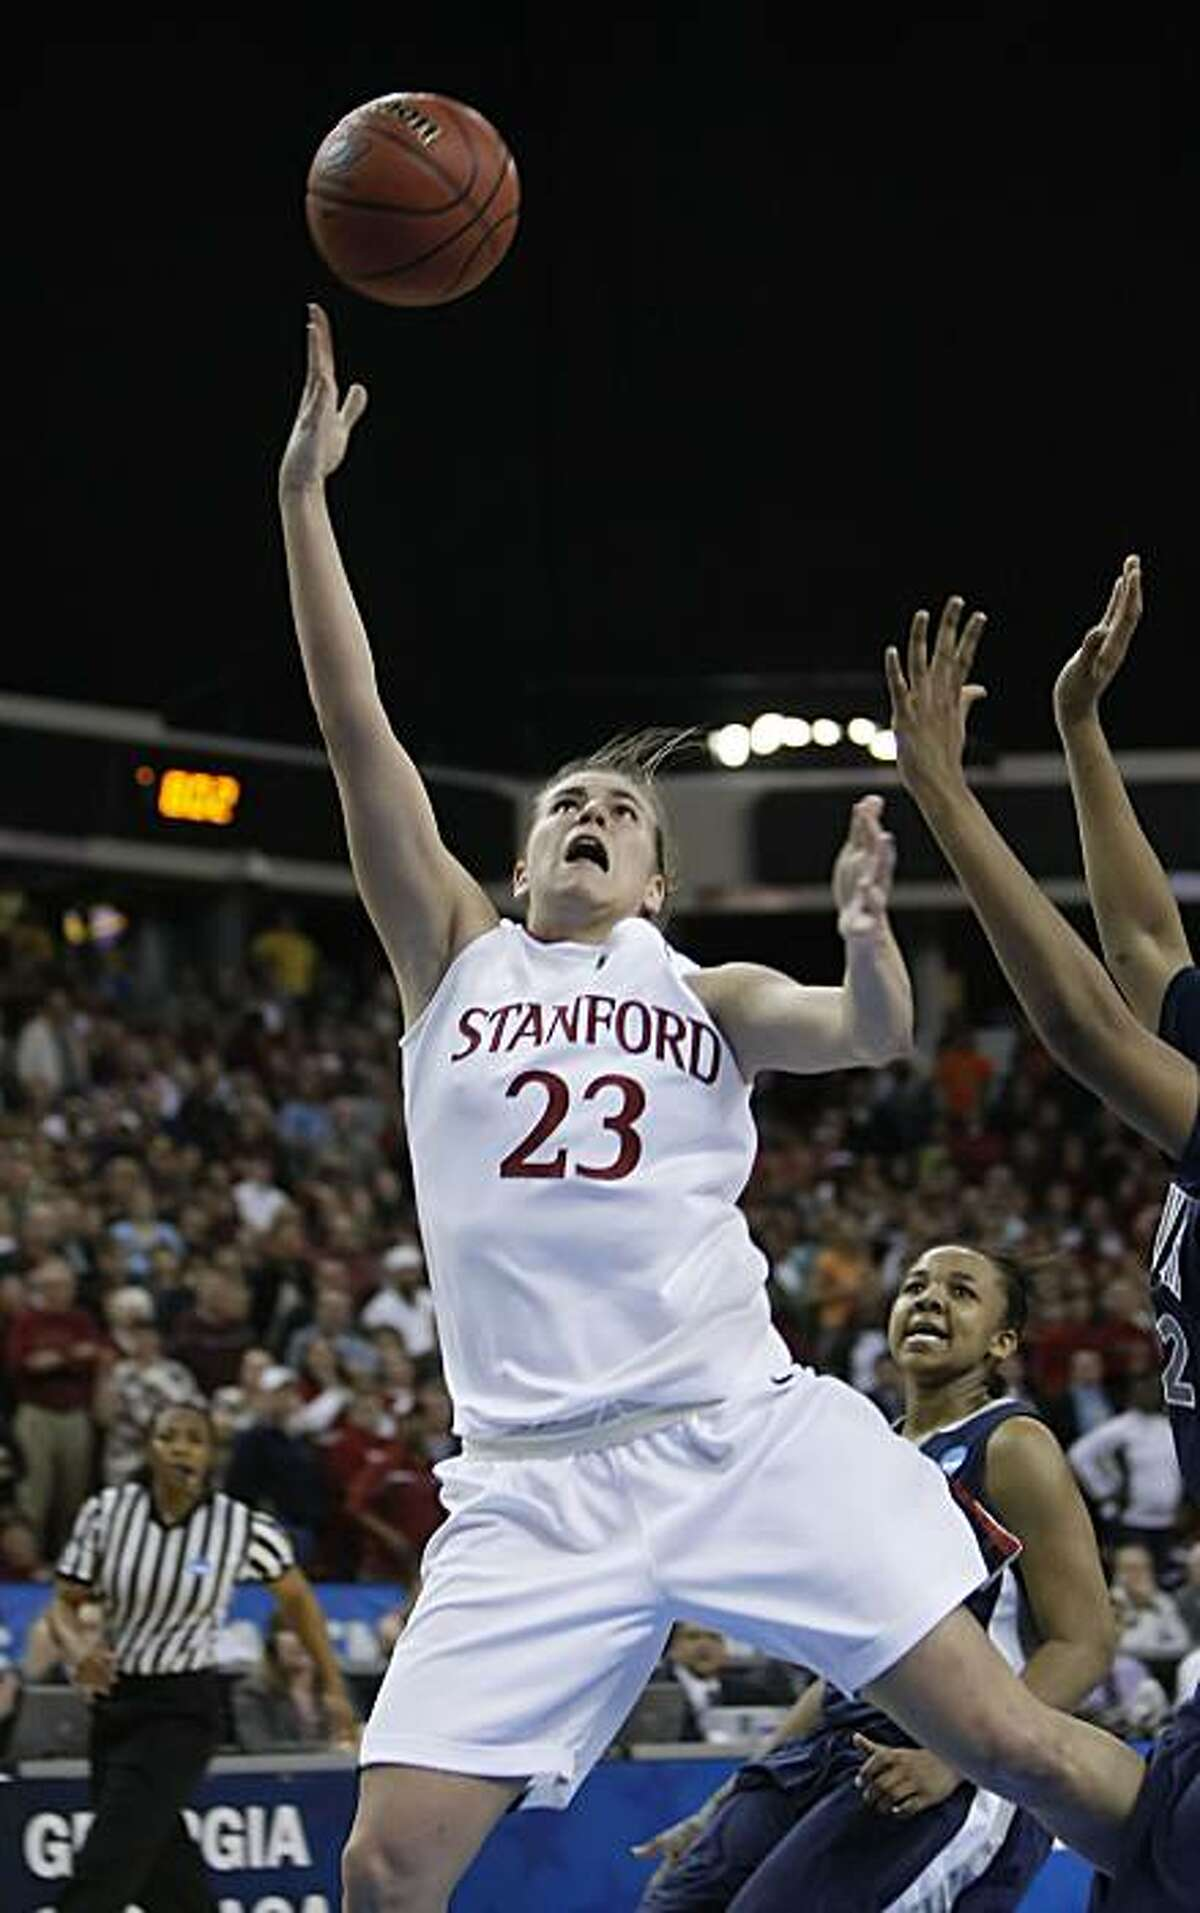 Stanford's Jeanette Pohlen drives inside Xavier's April Phillips for the final basket and the win for Stanford over Xavier in the regional final of the 2010 NCAA Women's Basketball Tournament at Arco Arena in Sacramento on Monday.